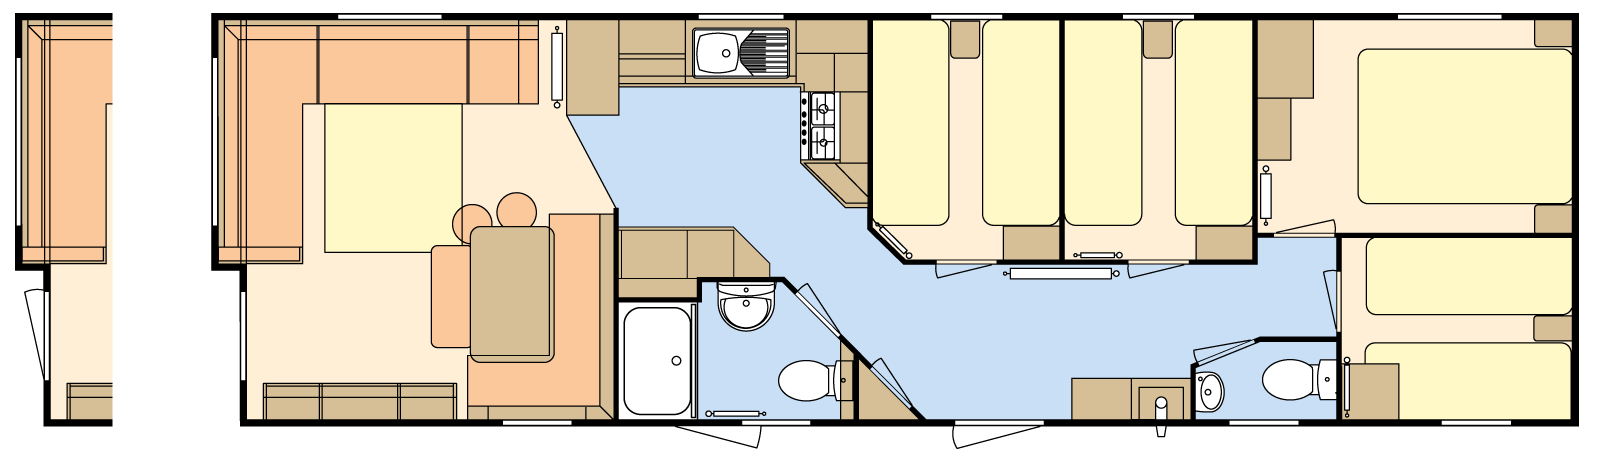 39 × 12 – 4 bedroom/8 berth